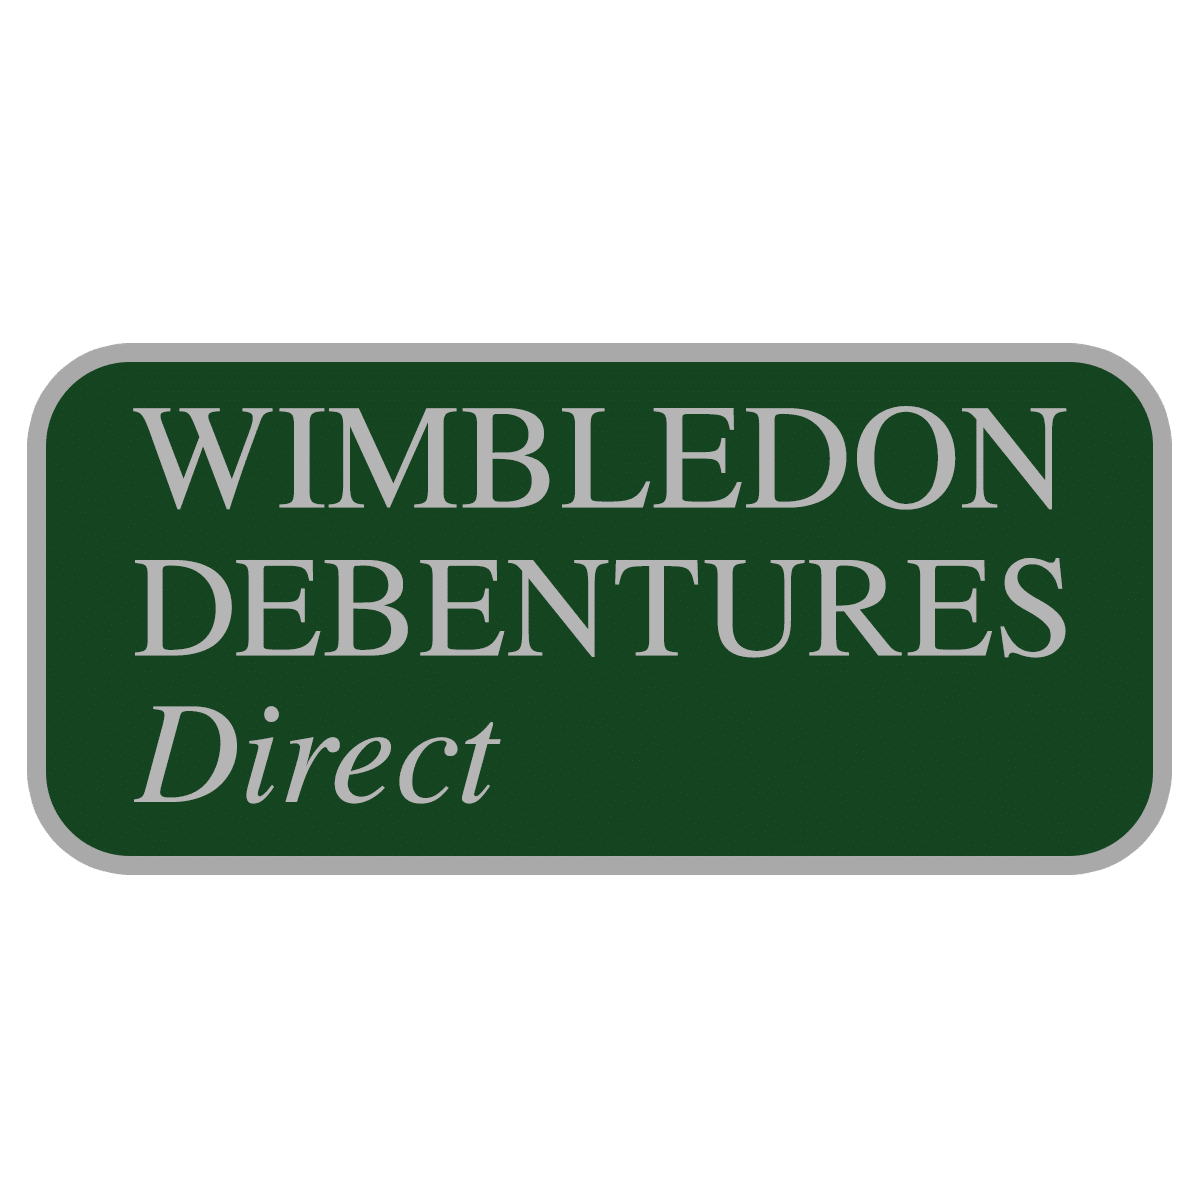 Purchase Wimbledon Debenture Tickets